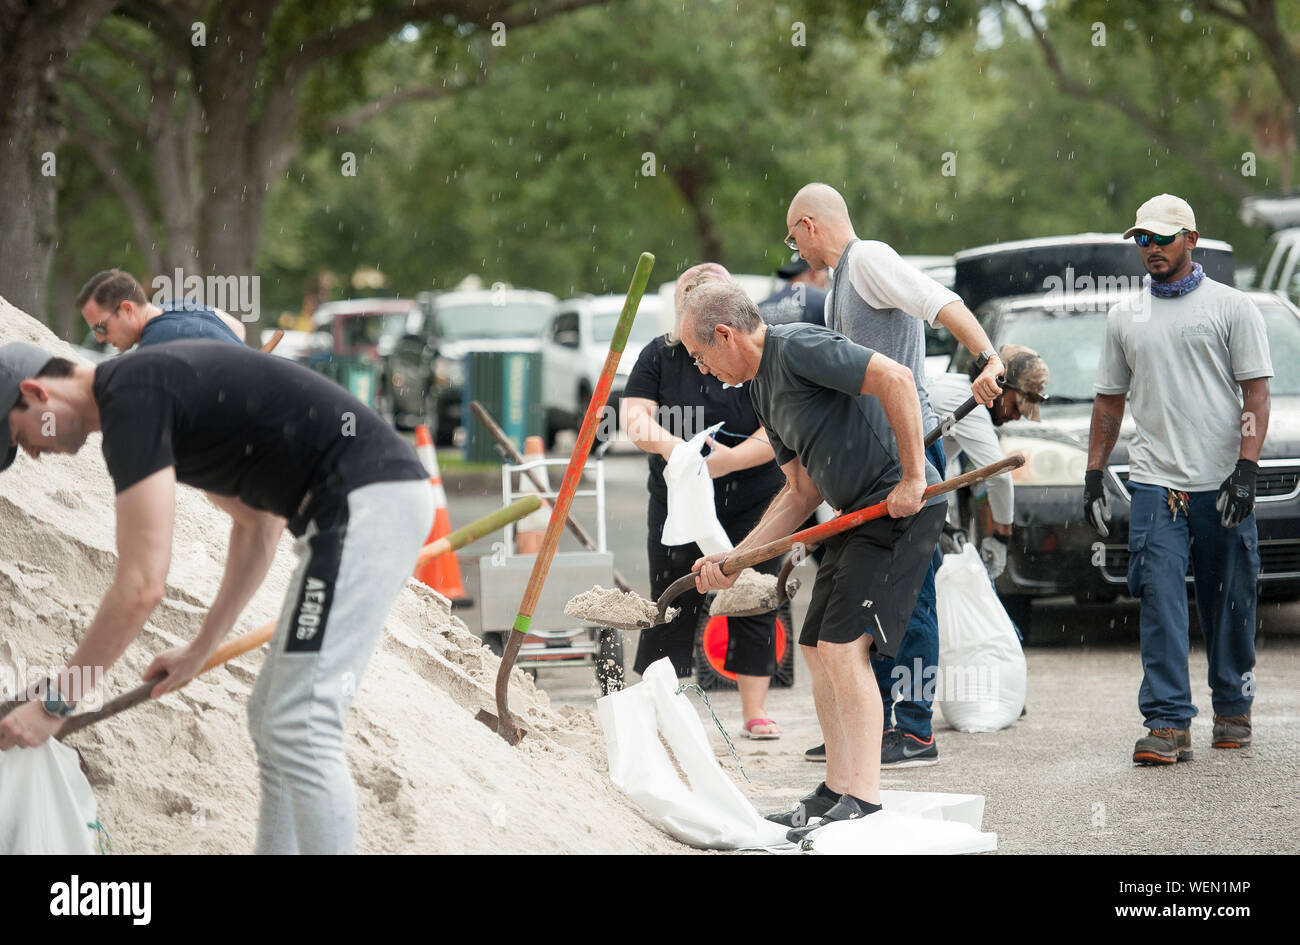 Fort Lauderdale, Florida, USA. 30th Aug, 2019. Residents of Fort Lauderdale line up to get sand bags distributed by the city of Fort Lauderdale in preperation for hurricane Dorian, in Fort Lauderdale, Fla. The hurricane is forecast to hit Florida as a major category 4 hurricane late Monday. Credit: Orit Ben-Ezzer/ZUMA Wire/Alamy Live News Stock Photo